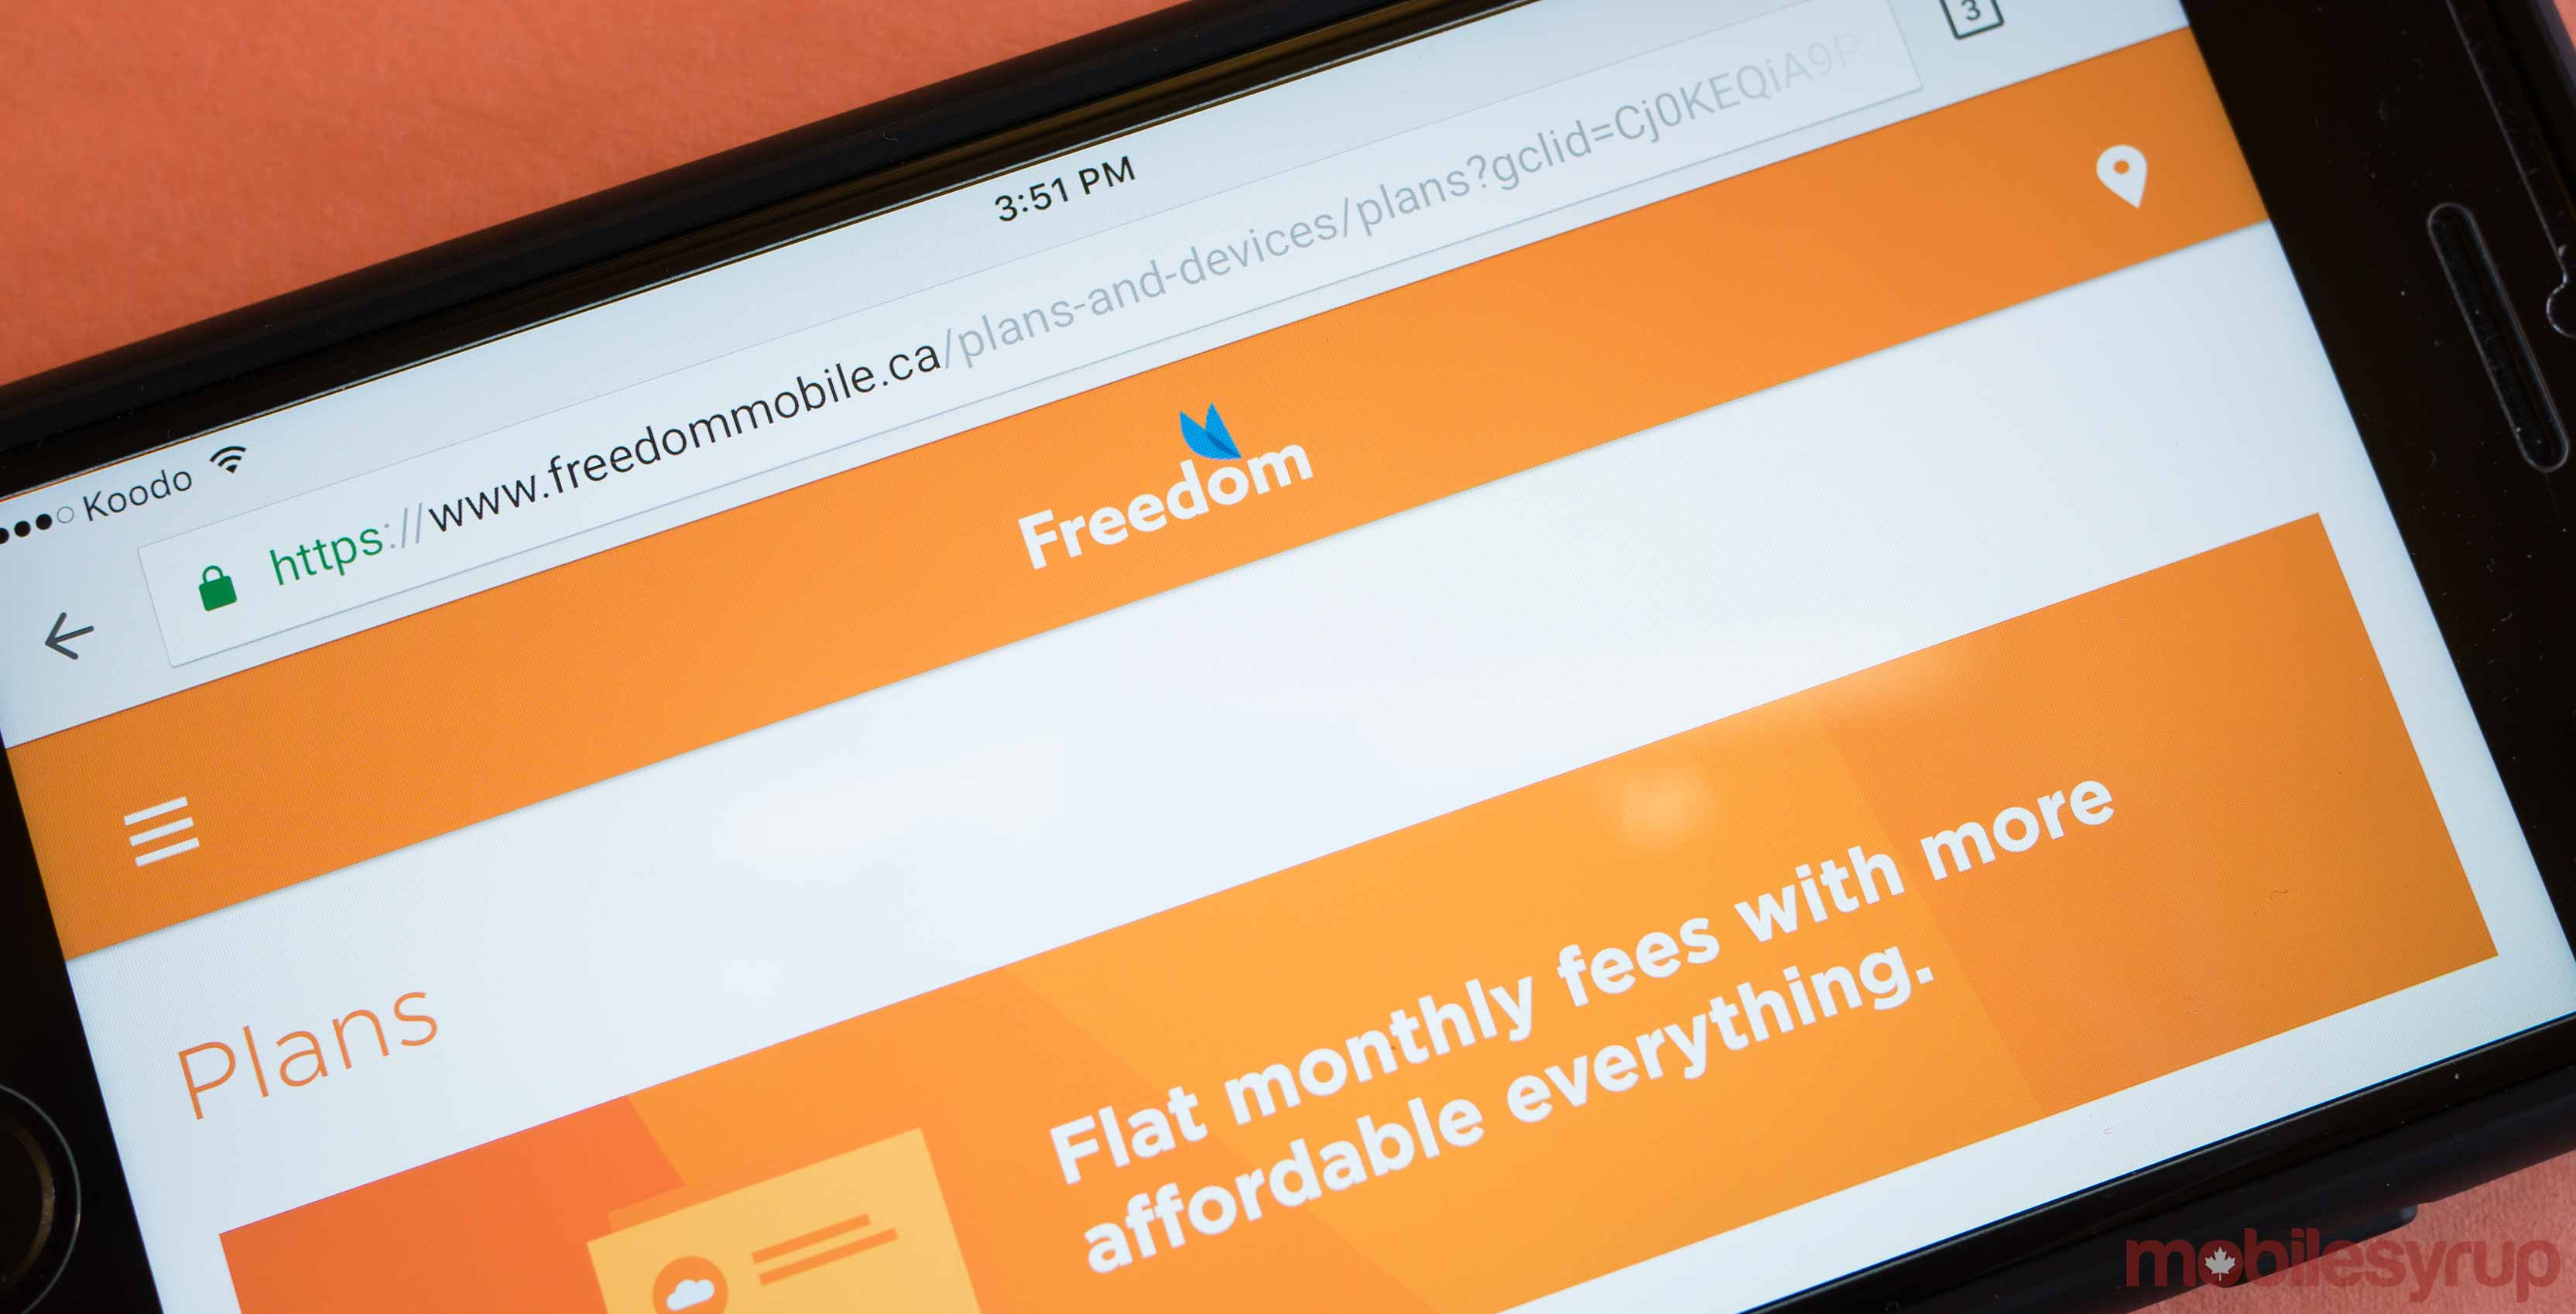 Freedom Mobile lte network